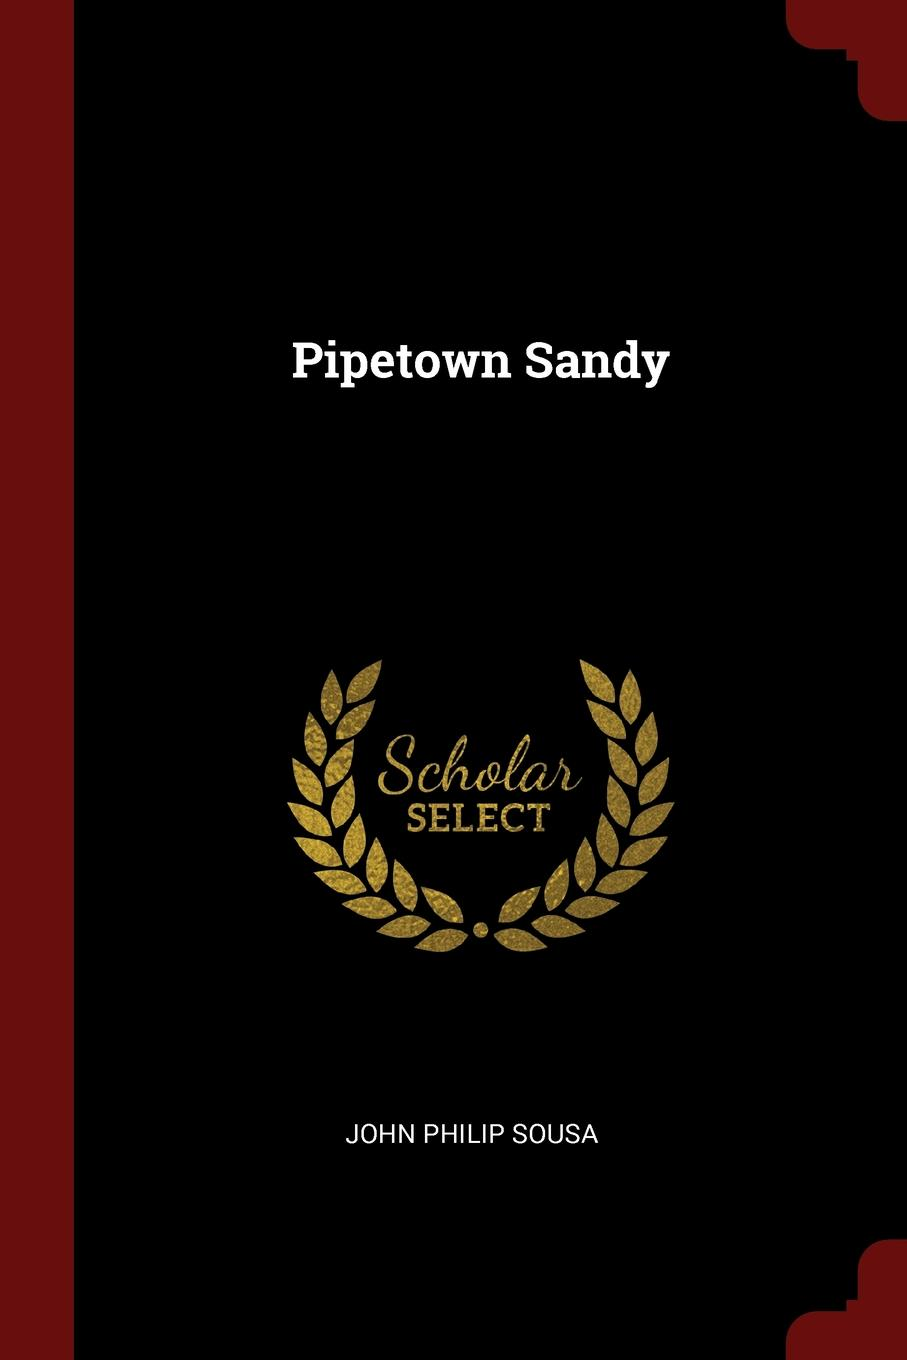 Pipetown Sandy